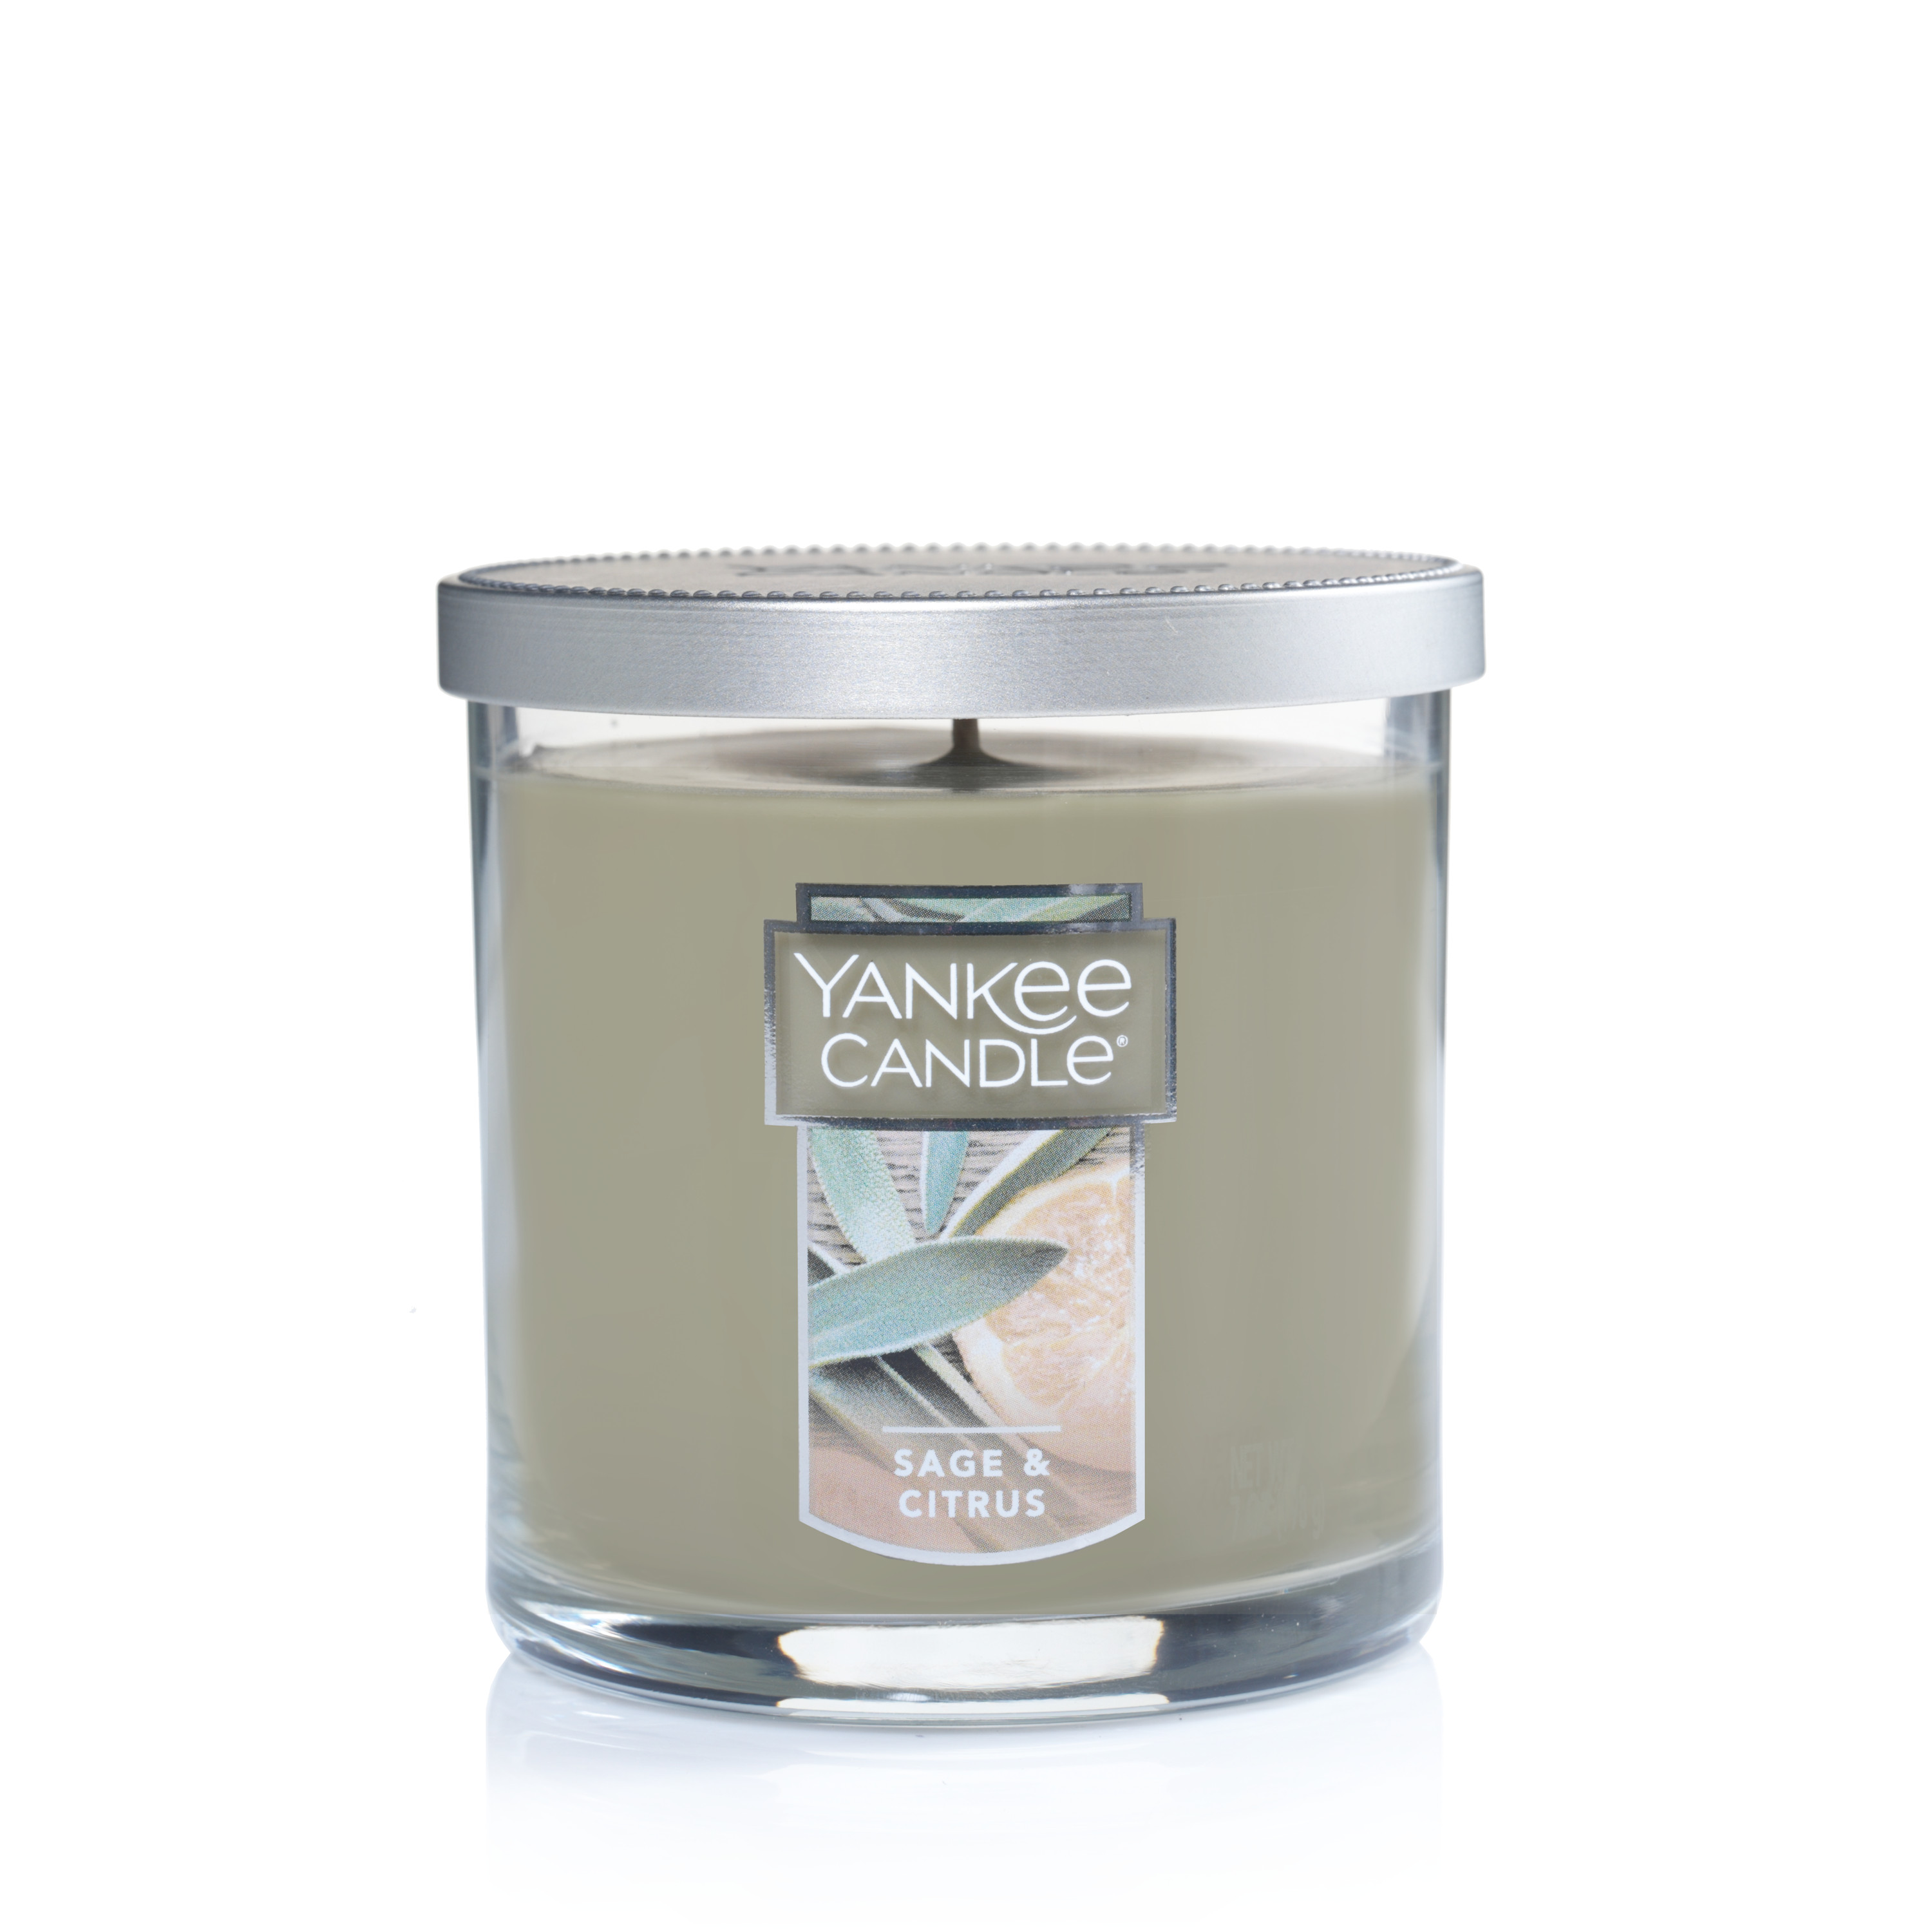 Yankee Candle Large 2-Wick Tumbler Candle, Sage & Citrus by Newell Brands